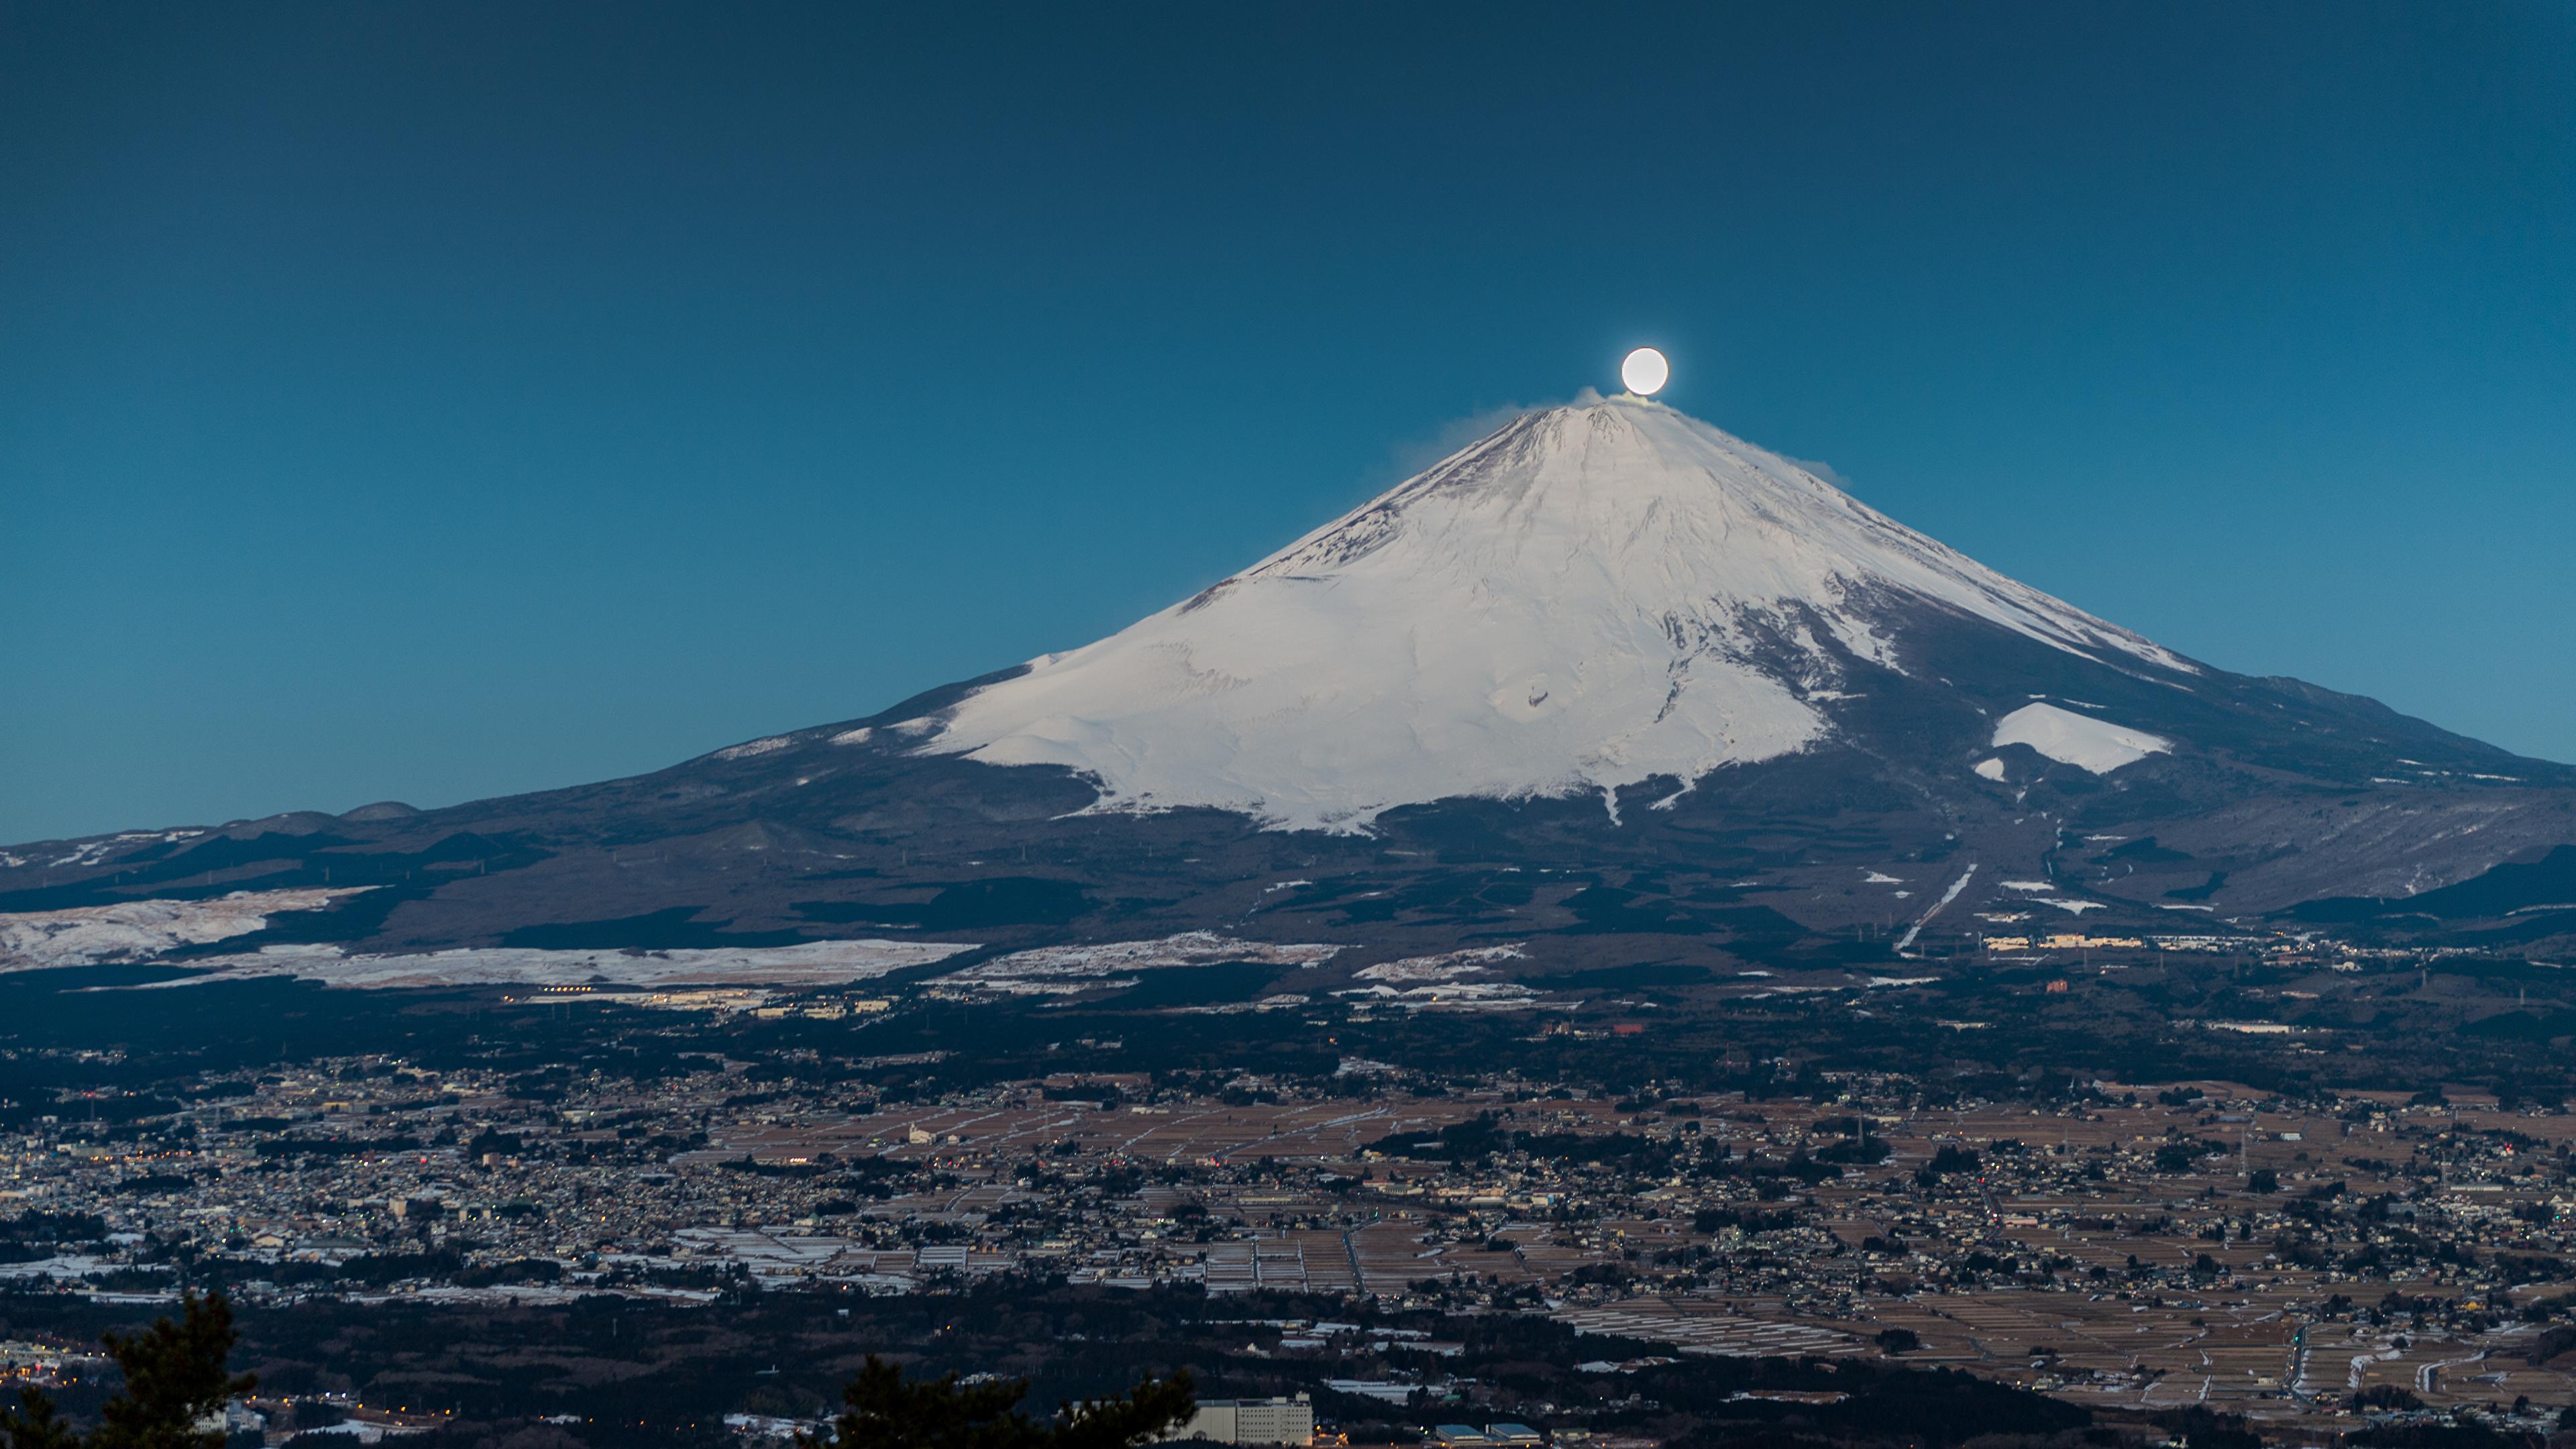 Images Mount Fuji Japan Volcano Nature Mountains Moon 3840x2160